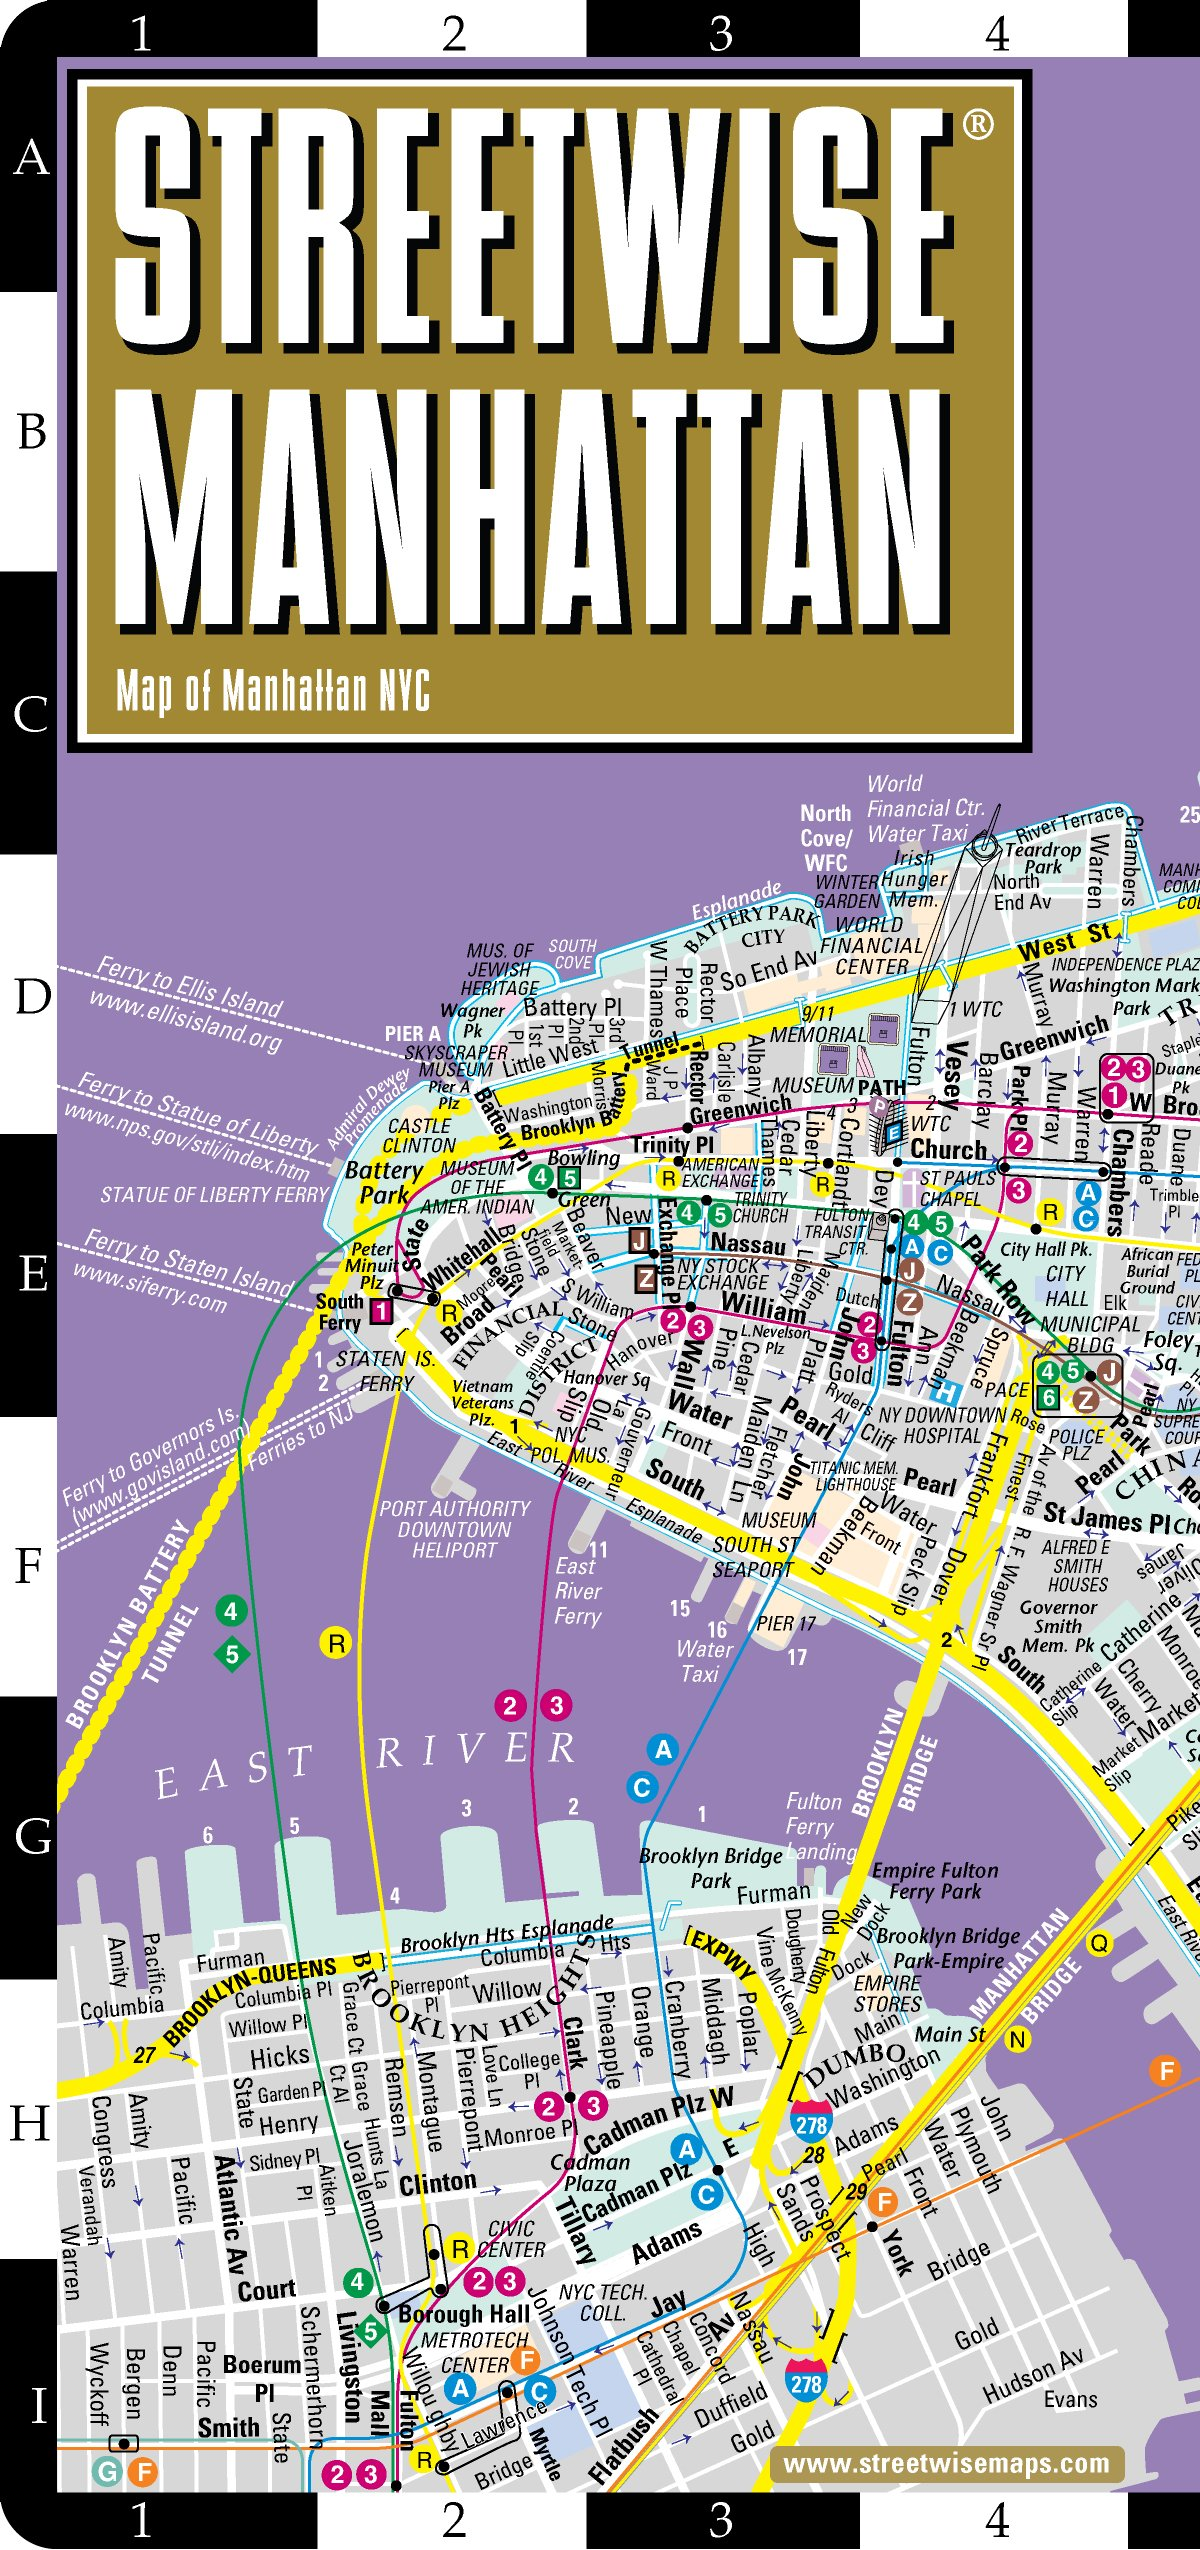 New York City Navigating Subway Map.Streetwise Manhattan Map Laminated City Street Map Of Manhattan